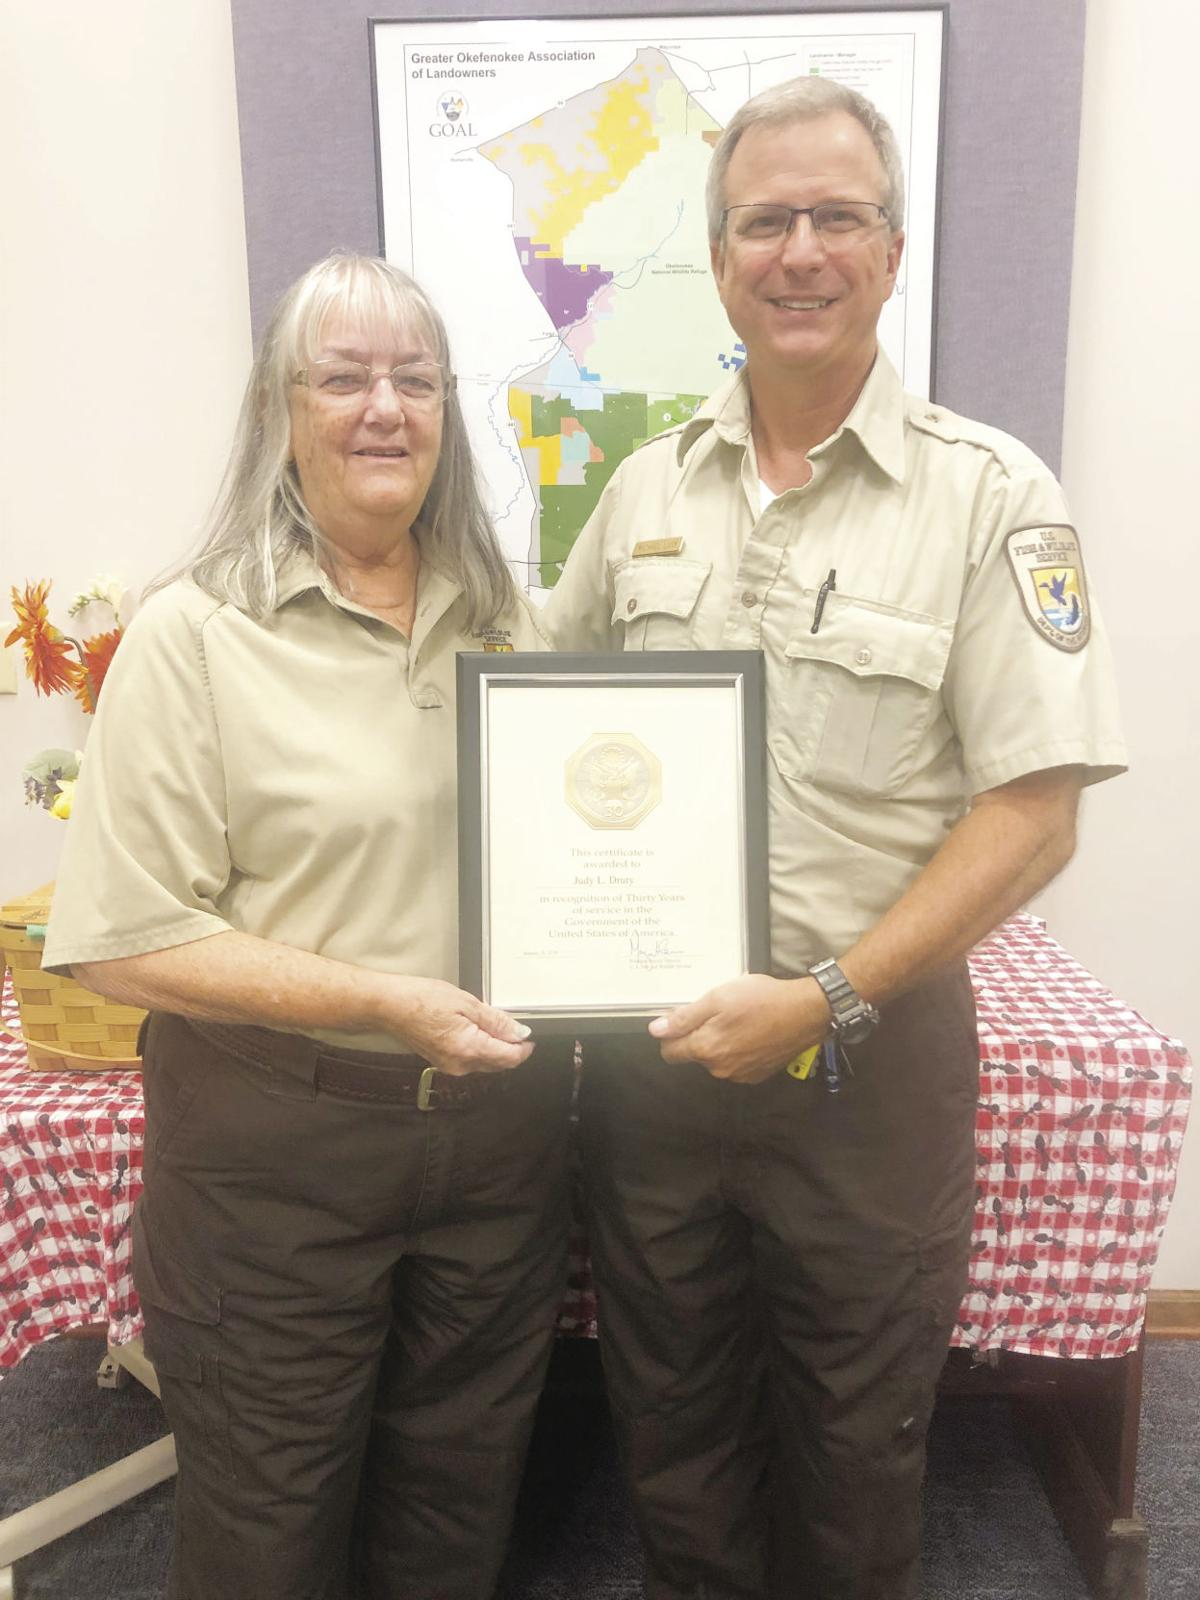 Judy Drury retires from ONWR after 32 years